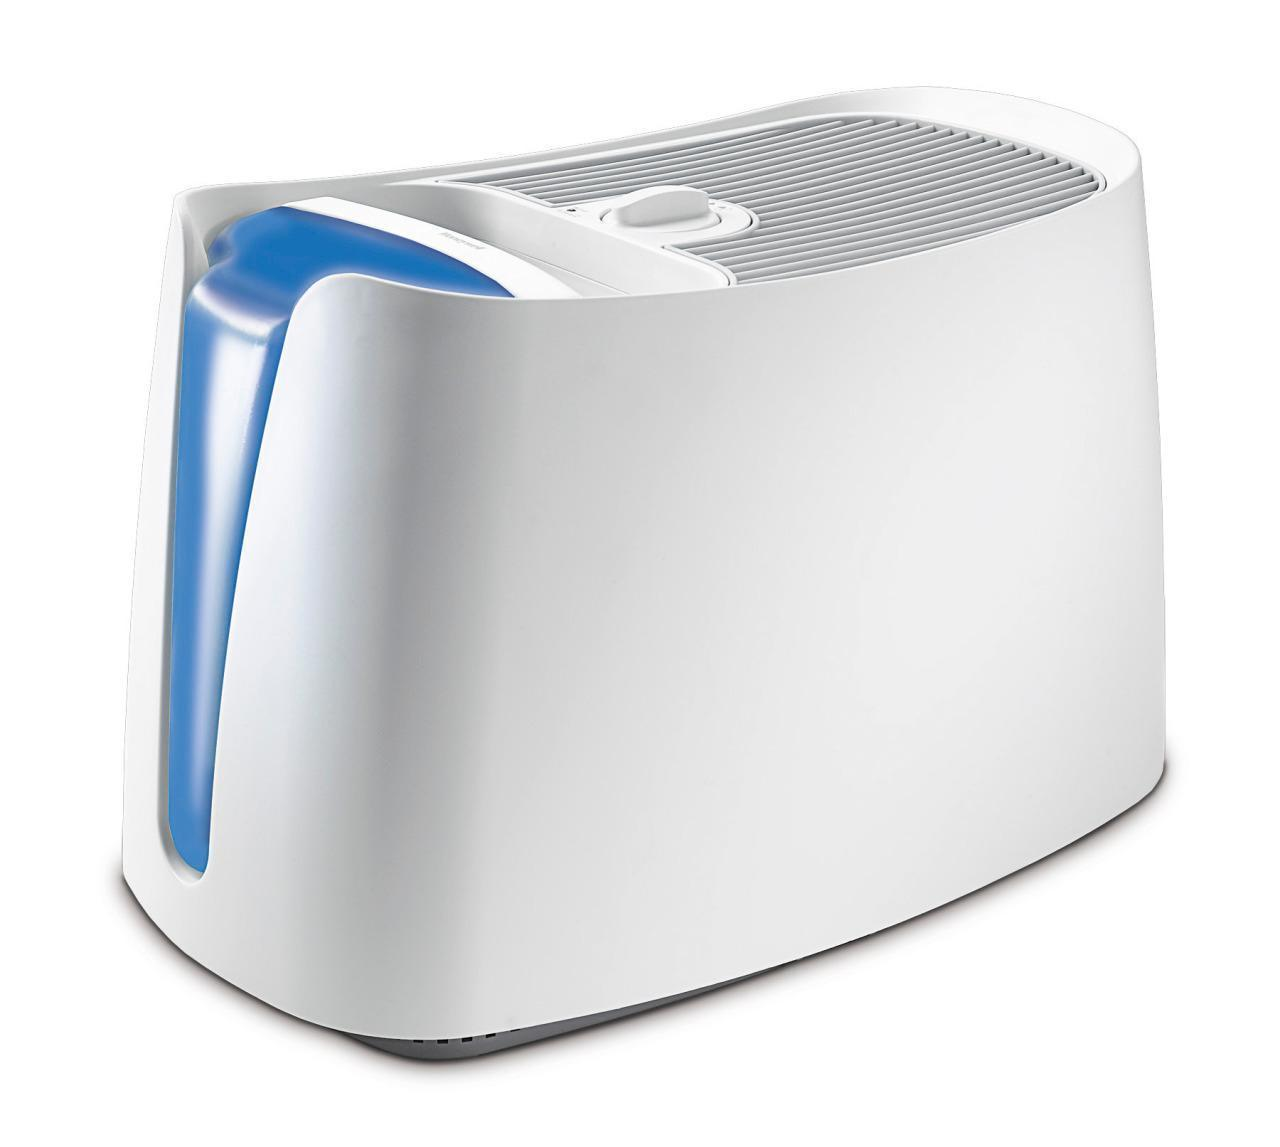 Honeywell Humidifier He260 Kids Wiring Diagram Images Electrical Circuit Get 30 Percent Off